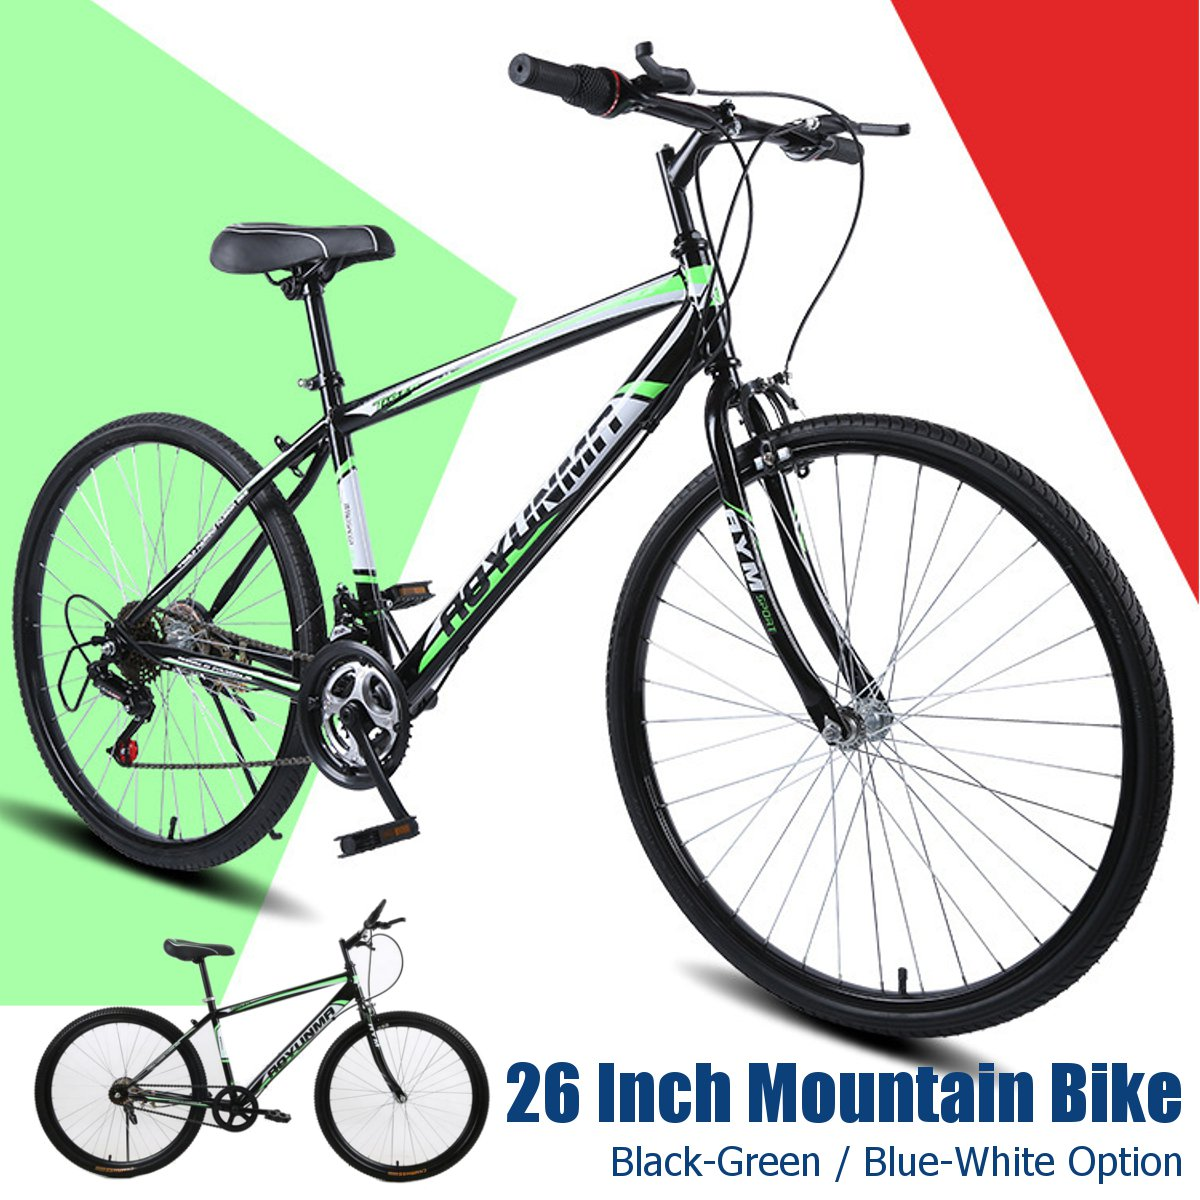 26 Inch V Brake Mountain Bike Full Bicycle Family Outdoor Hiking MTB Adults Teenagers Bike Bicycle Mechanical Cycling Sports